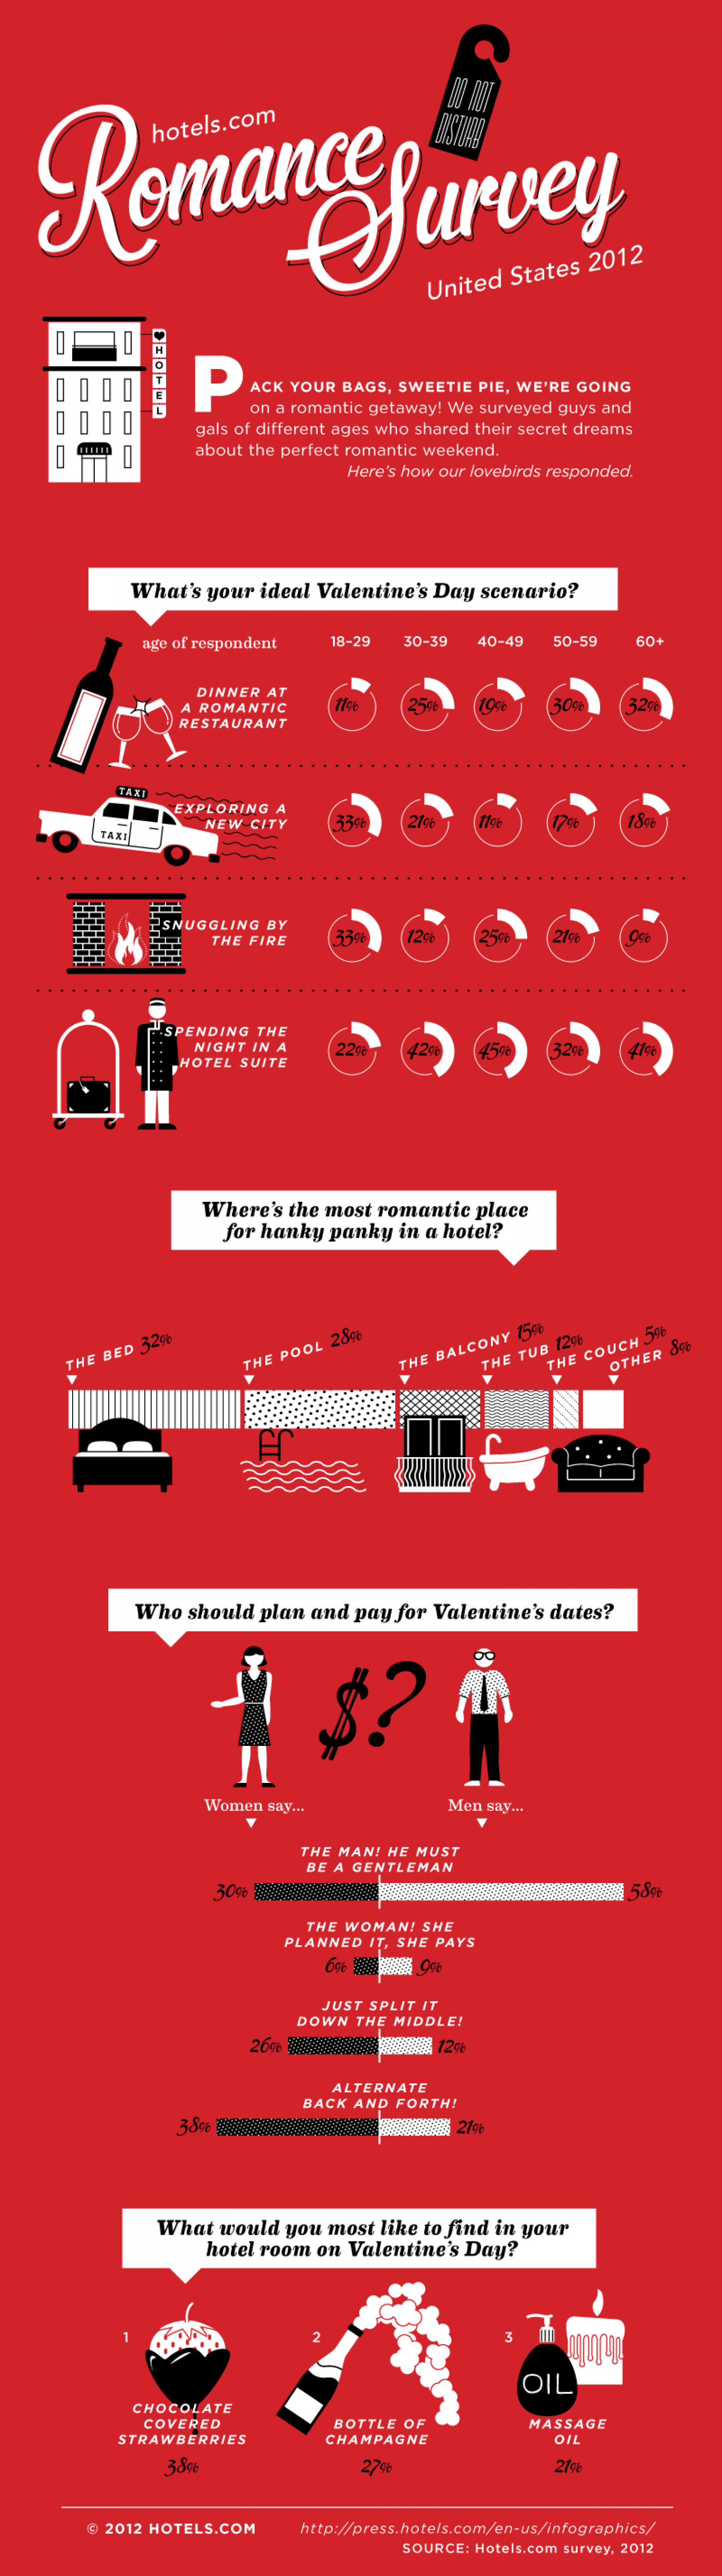 2012 Romance Survey Infographic